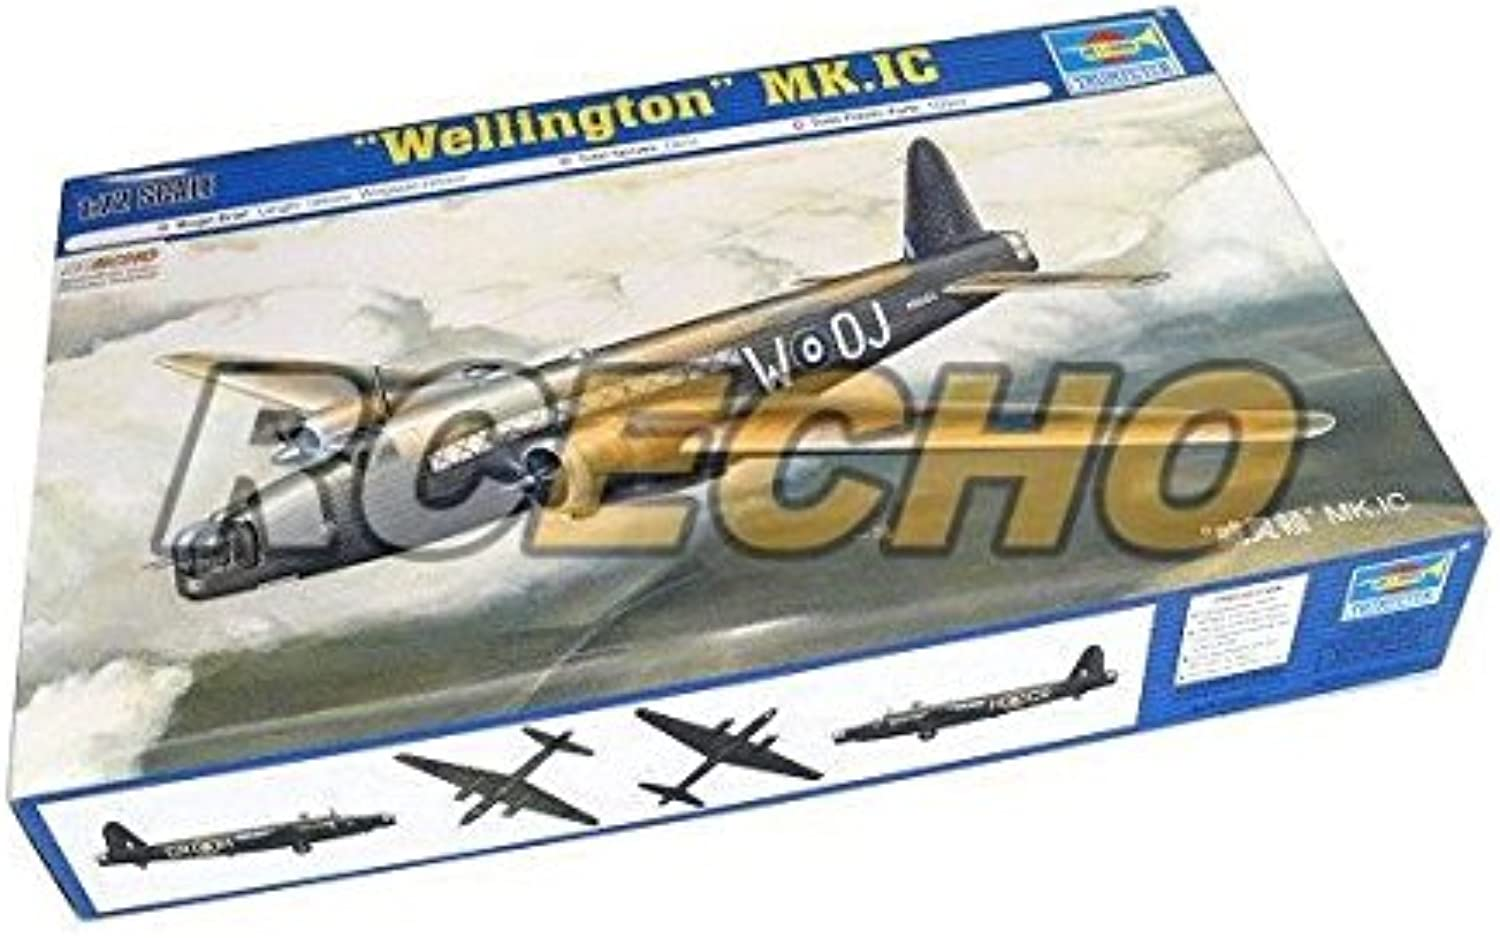 RCECHO® TRUMPETER Aircraft Model 1 72 Wellington MK.IC Scale Hobby 01626 P1626 with RCECHO® Full Version Apps Edition B01LW1NU4J Vielfalt  | Praktisch Und Wirtschaftlich